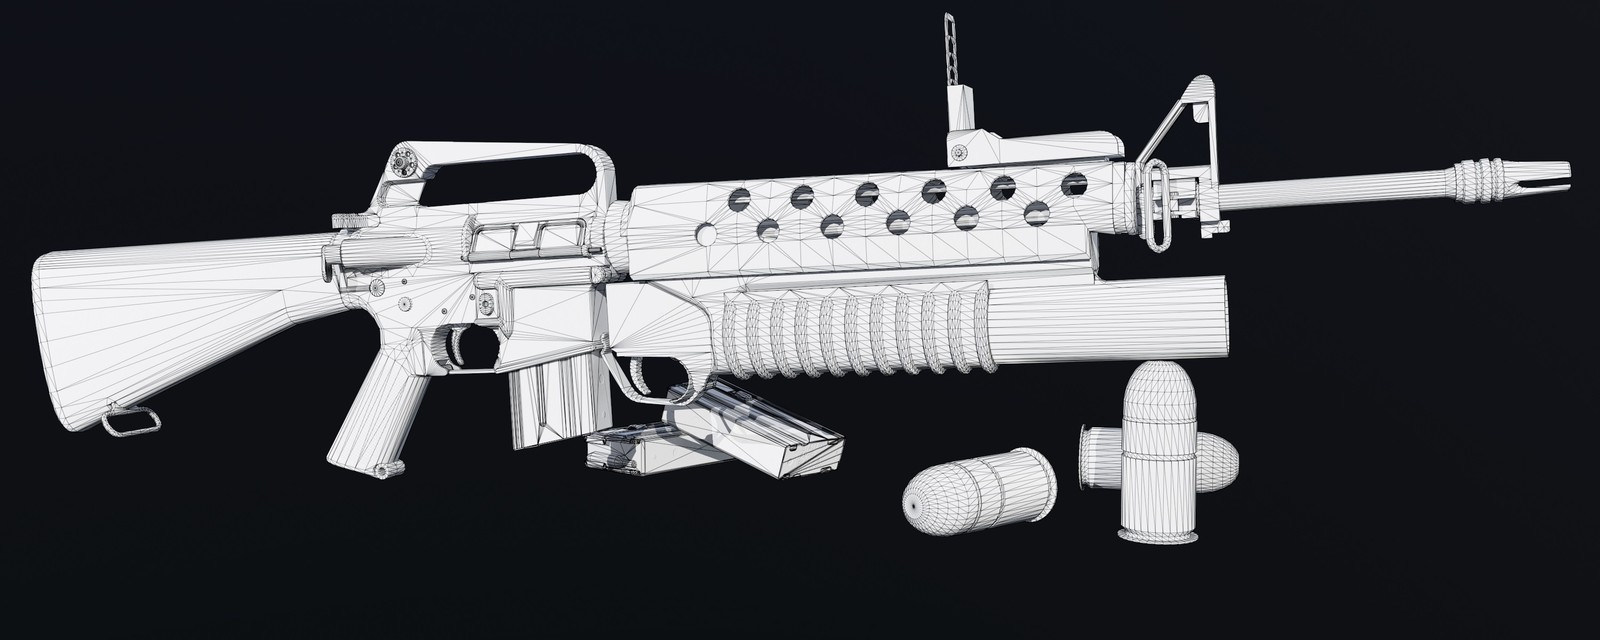 M16A1 with M203 Wireframe